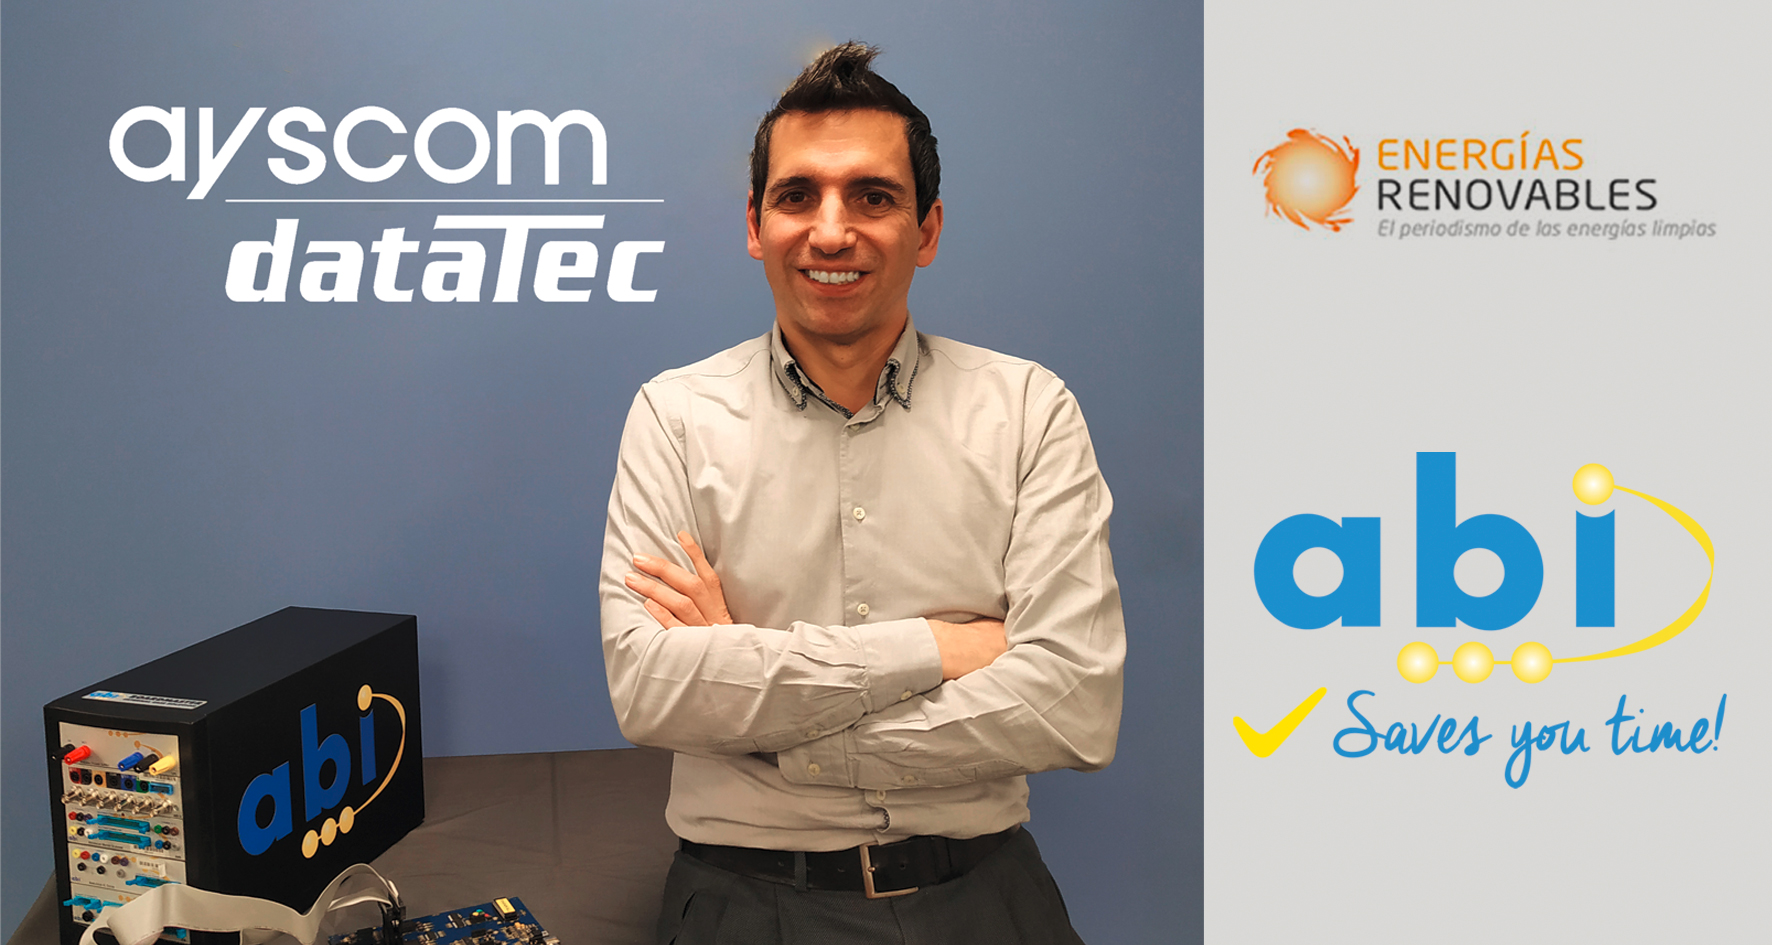 The magazine 'Renewable Energies' interviews Julián Moreno, head of Business Development and Energy at Ayscom dataTec